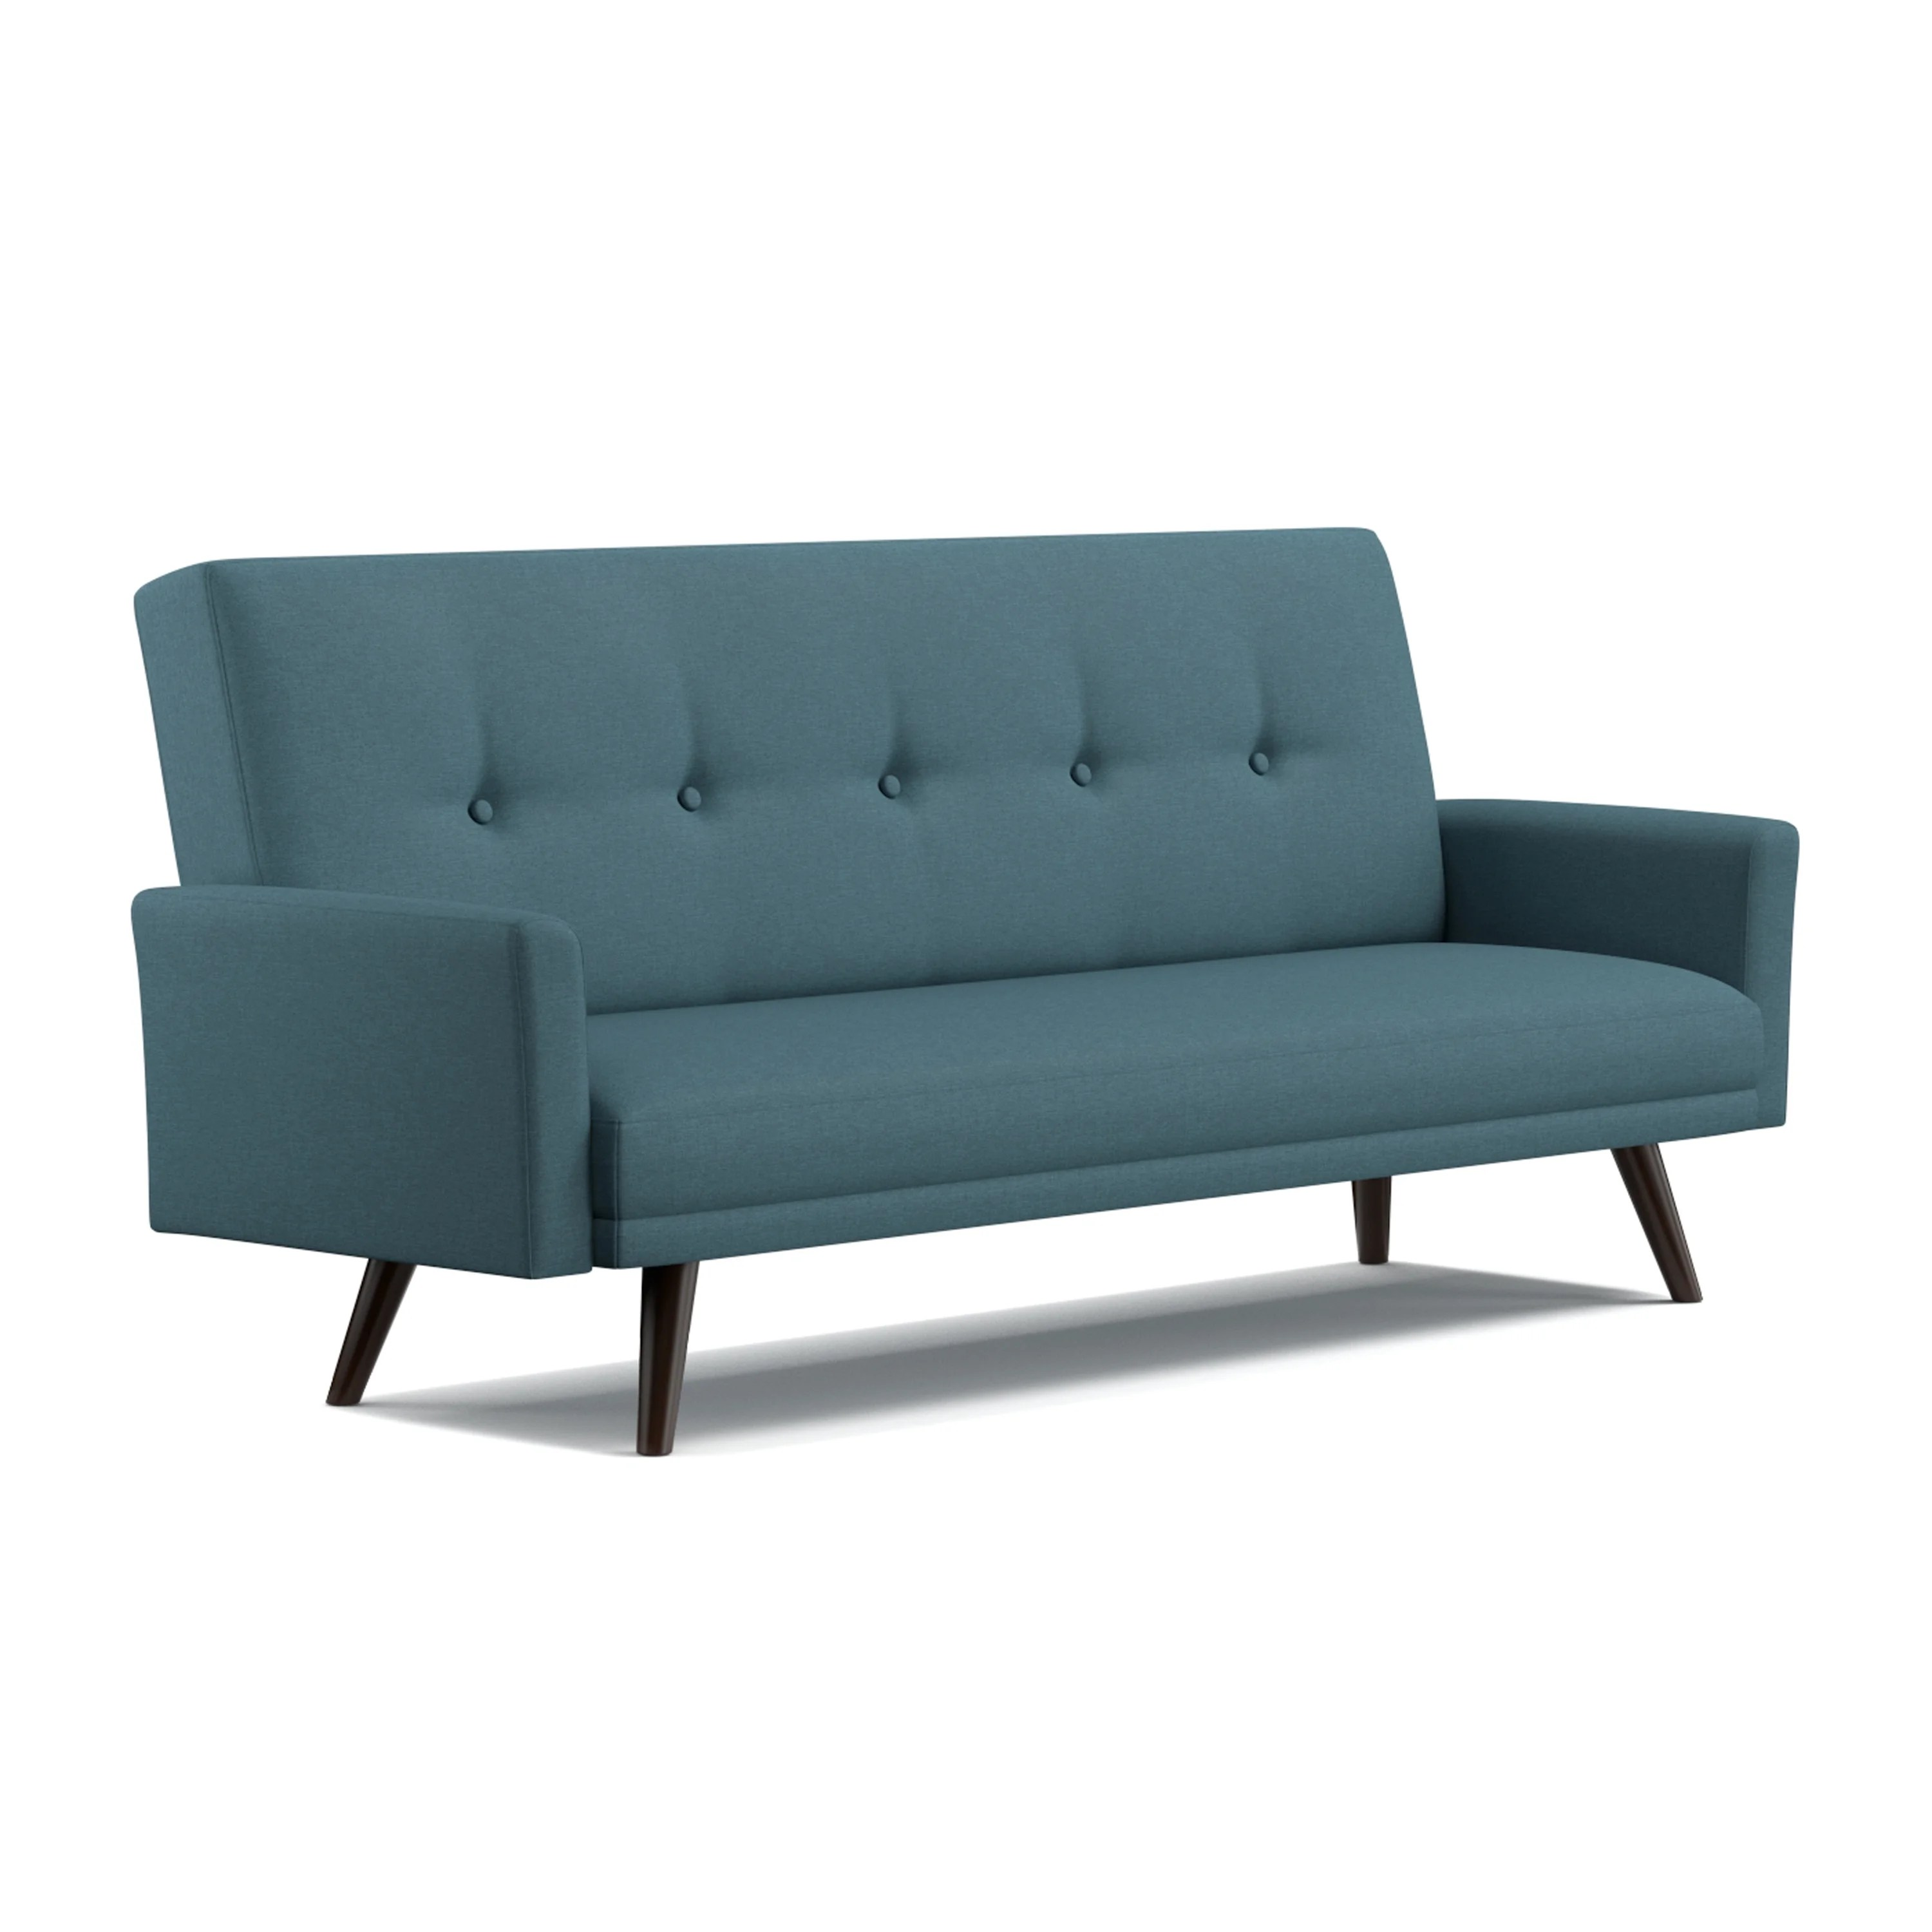 Adirondack Sessel Buy Handy Living Sofas Couches Online At Overstock Our Best